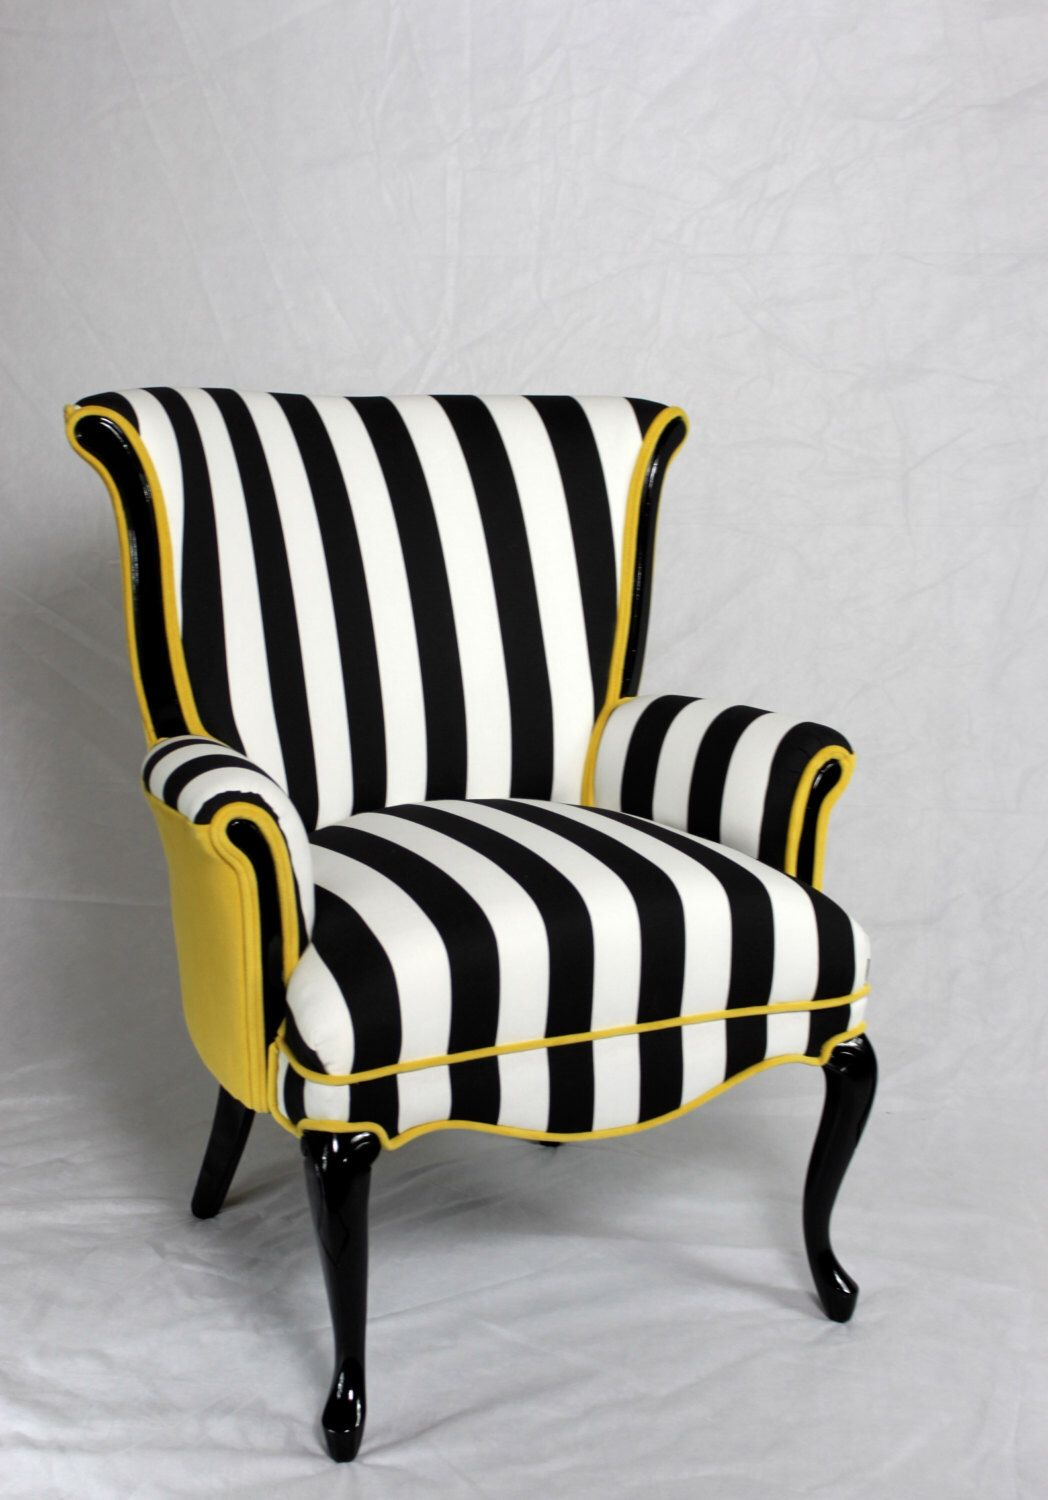 An Old Fashioned Chair With A Stuffy Shape Is Reinvented This Black And White Striped Fabric The Color Curator Photo